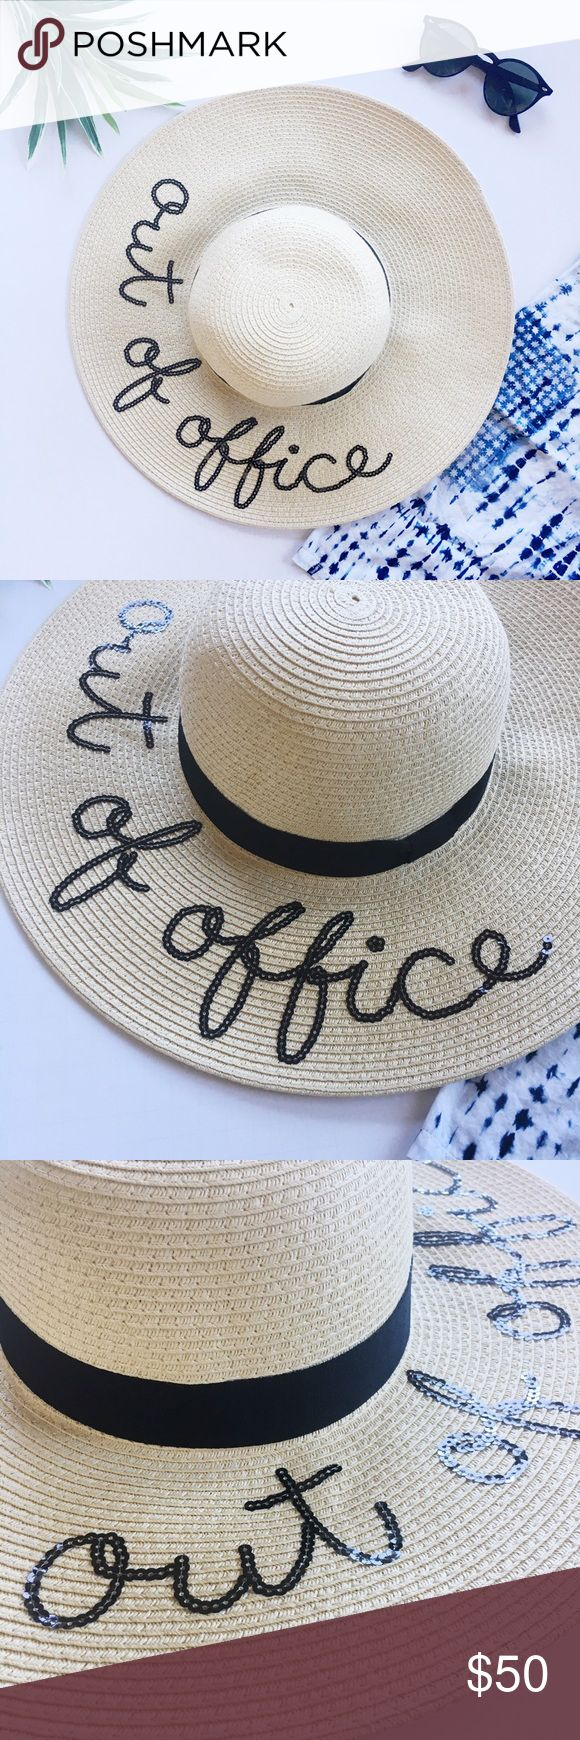 Out of Office Sequin Message Sun Beach Hat Going on a warm vacation? You NEED this sun hat! Black sequin lettering with black band trim. The materials is pretty forgiving and can be pressed into a suitcase without damaging the shape. One size. So perfect for pool or beachside photos! Also selling a few other sayings in my closet! Accessories Hats